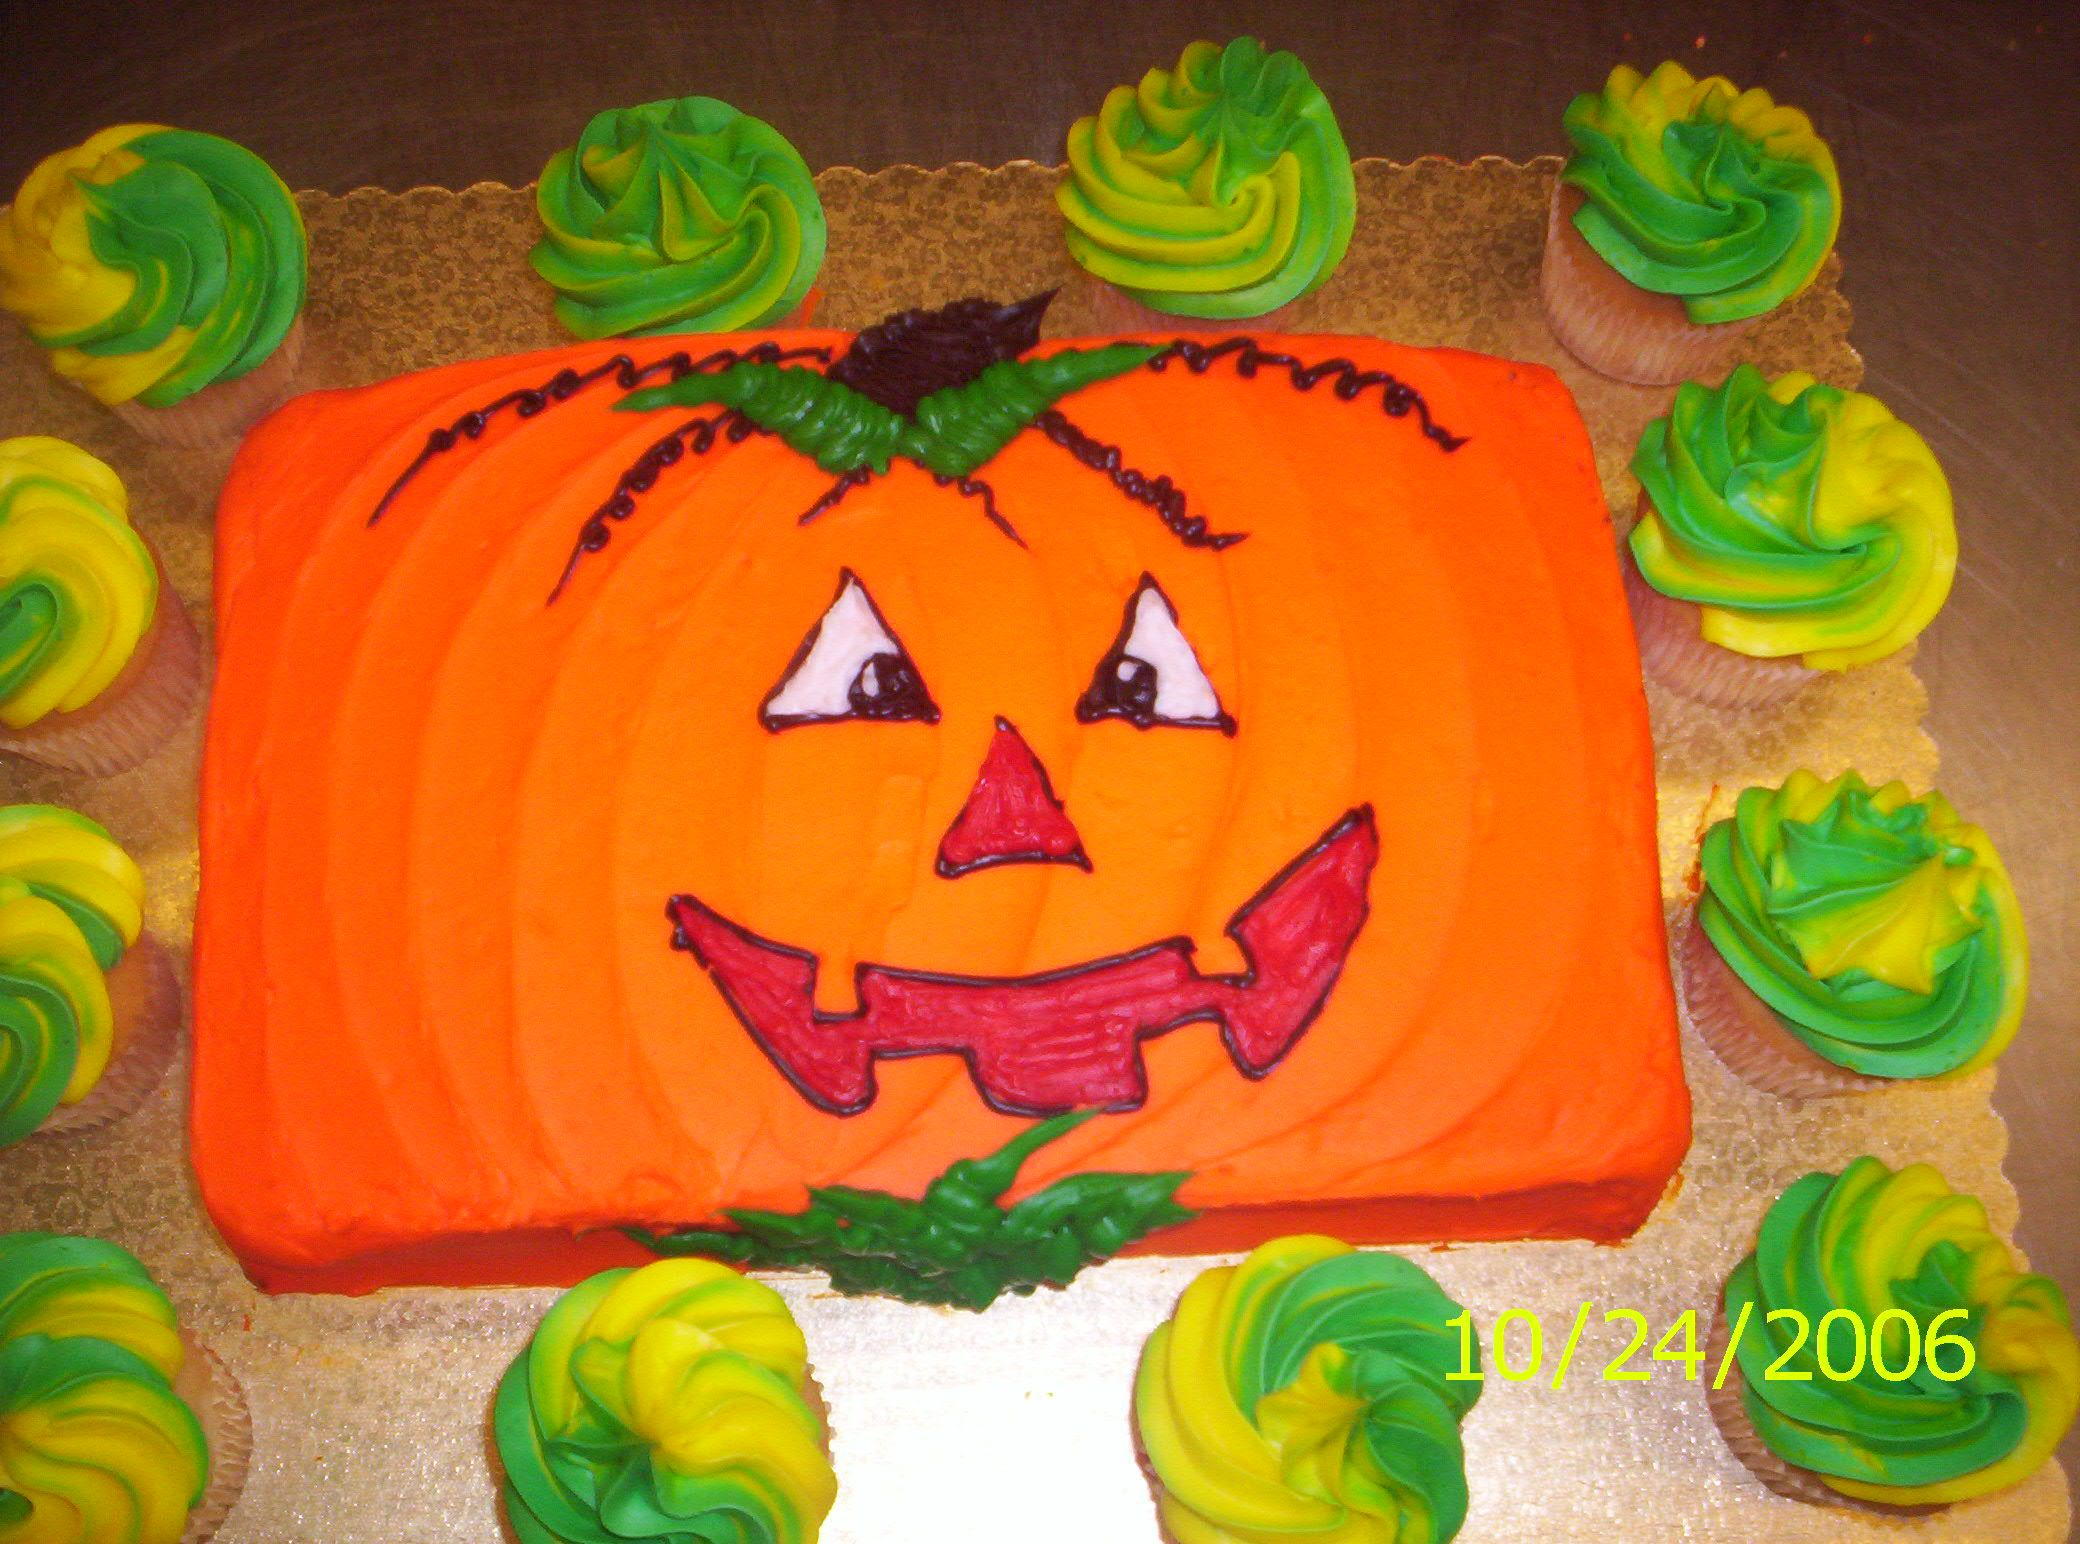 Halloween Cakes Halloween Cake Decorating Ideas Evrise